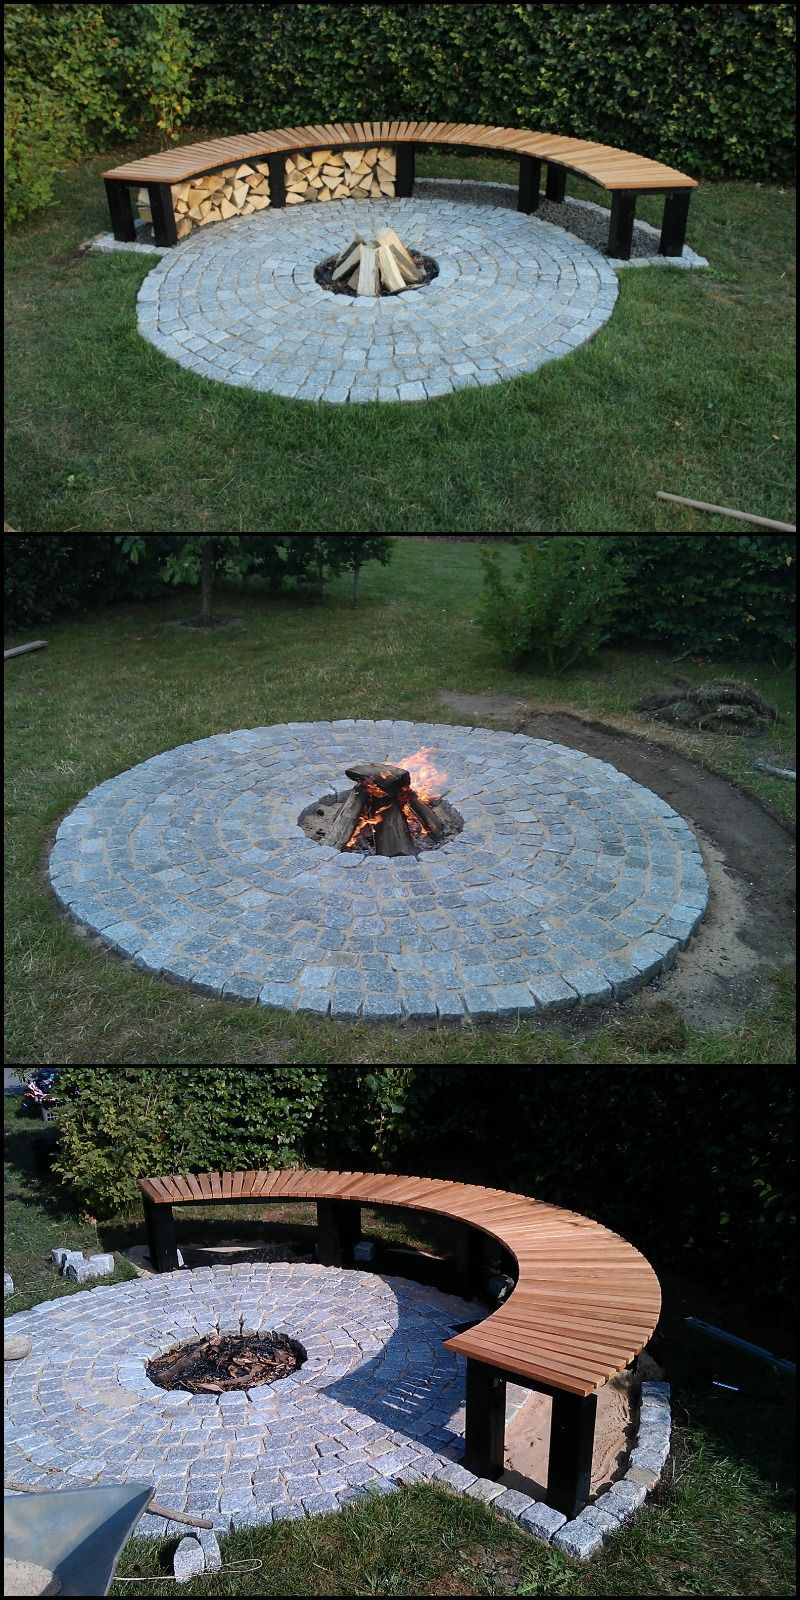 Cinder Block Fire Pit Design Ideas and Tips How to Build It #firepitideas